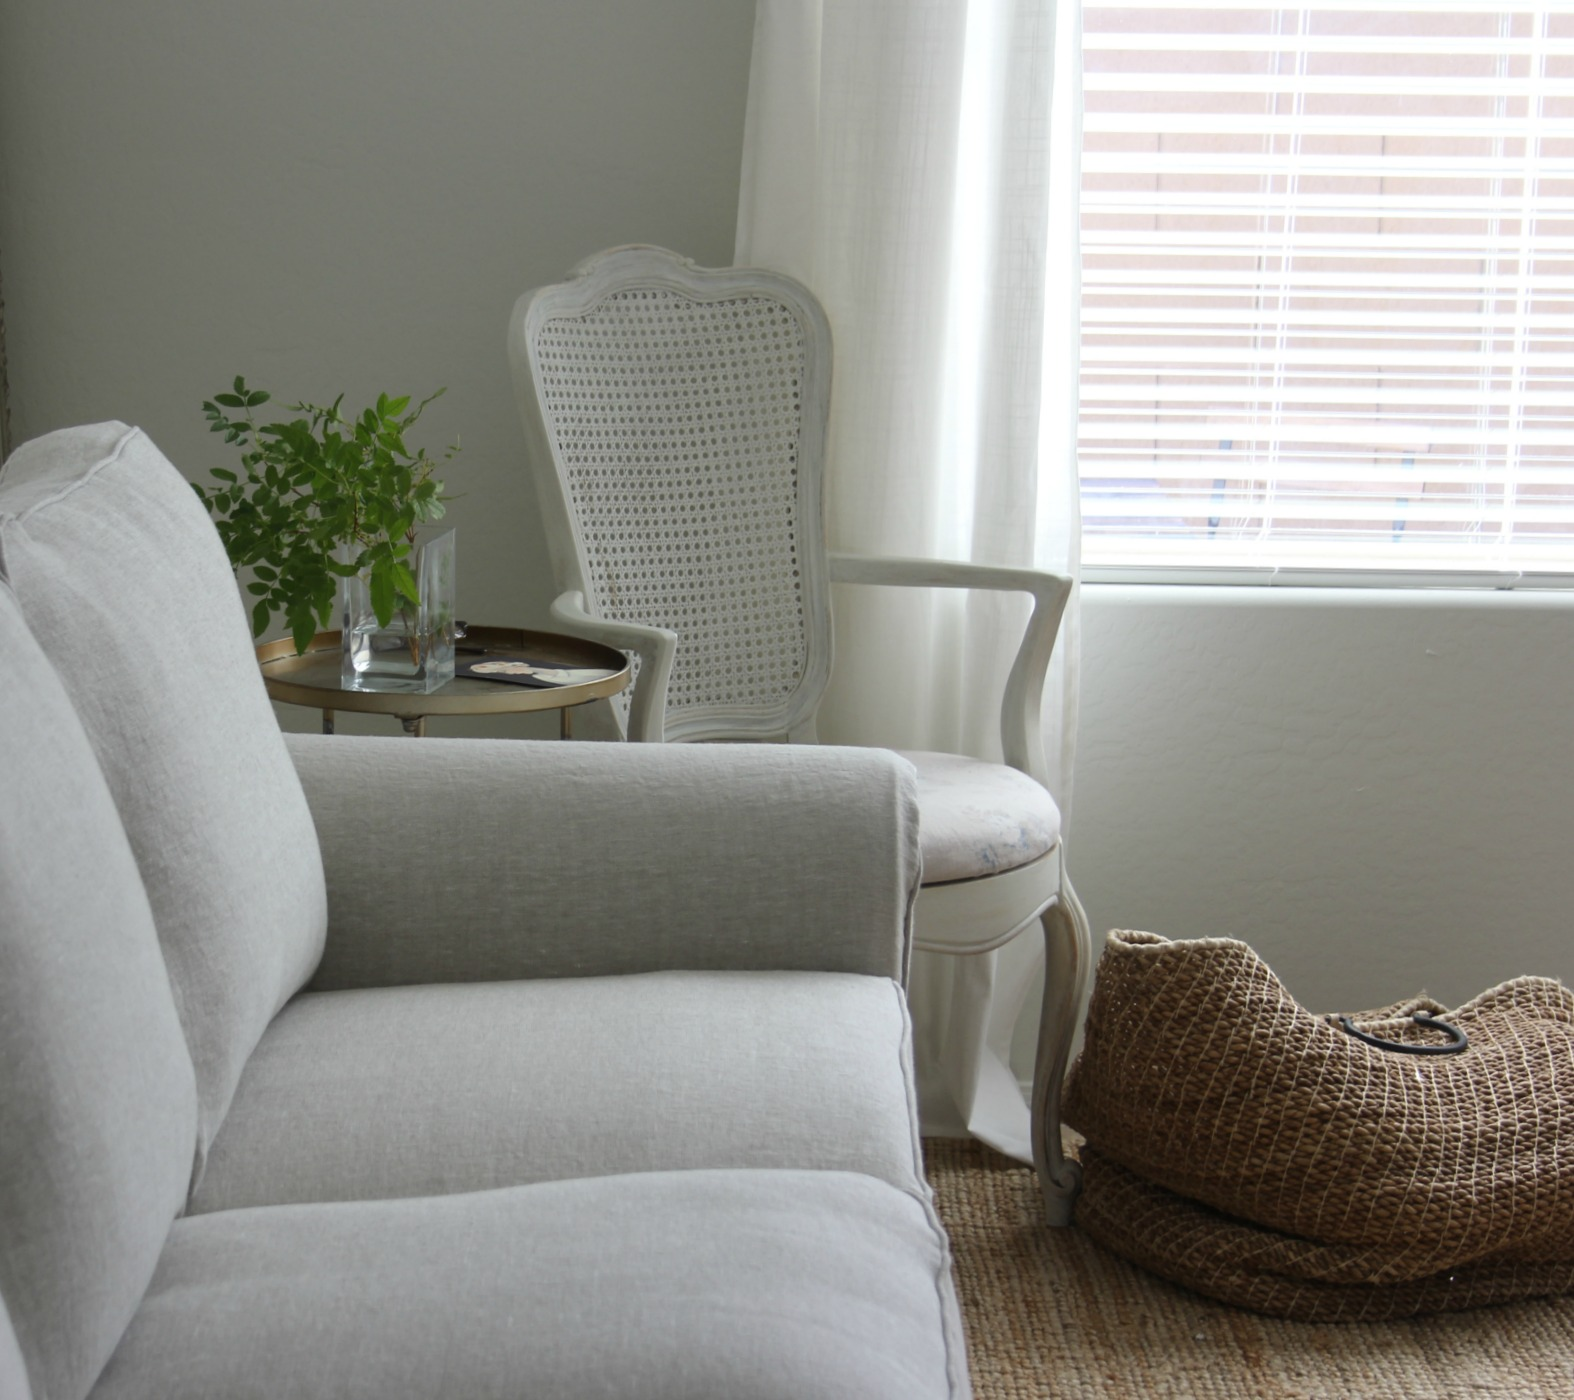 Belgian Linen Bemz cover for Ikea Ektorp sofa at fixer upper for Hello Lovely Studio